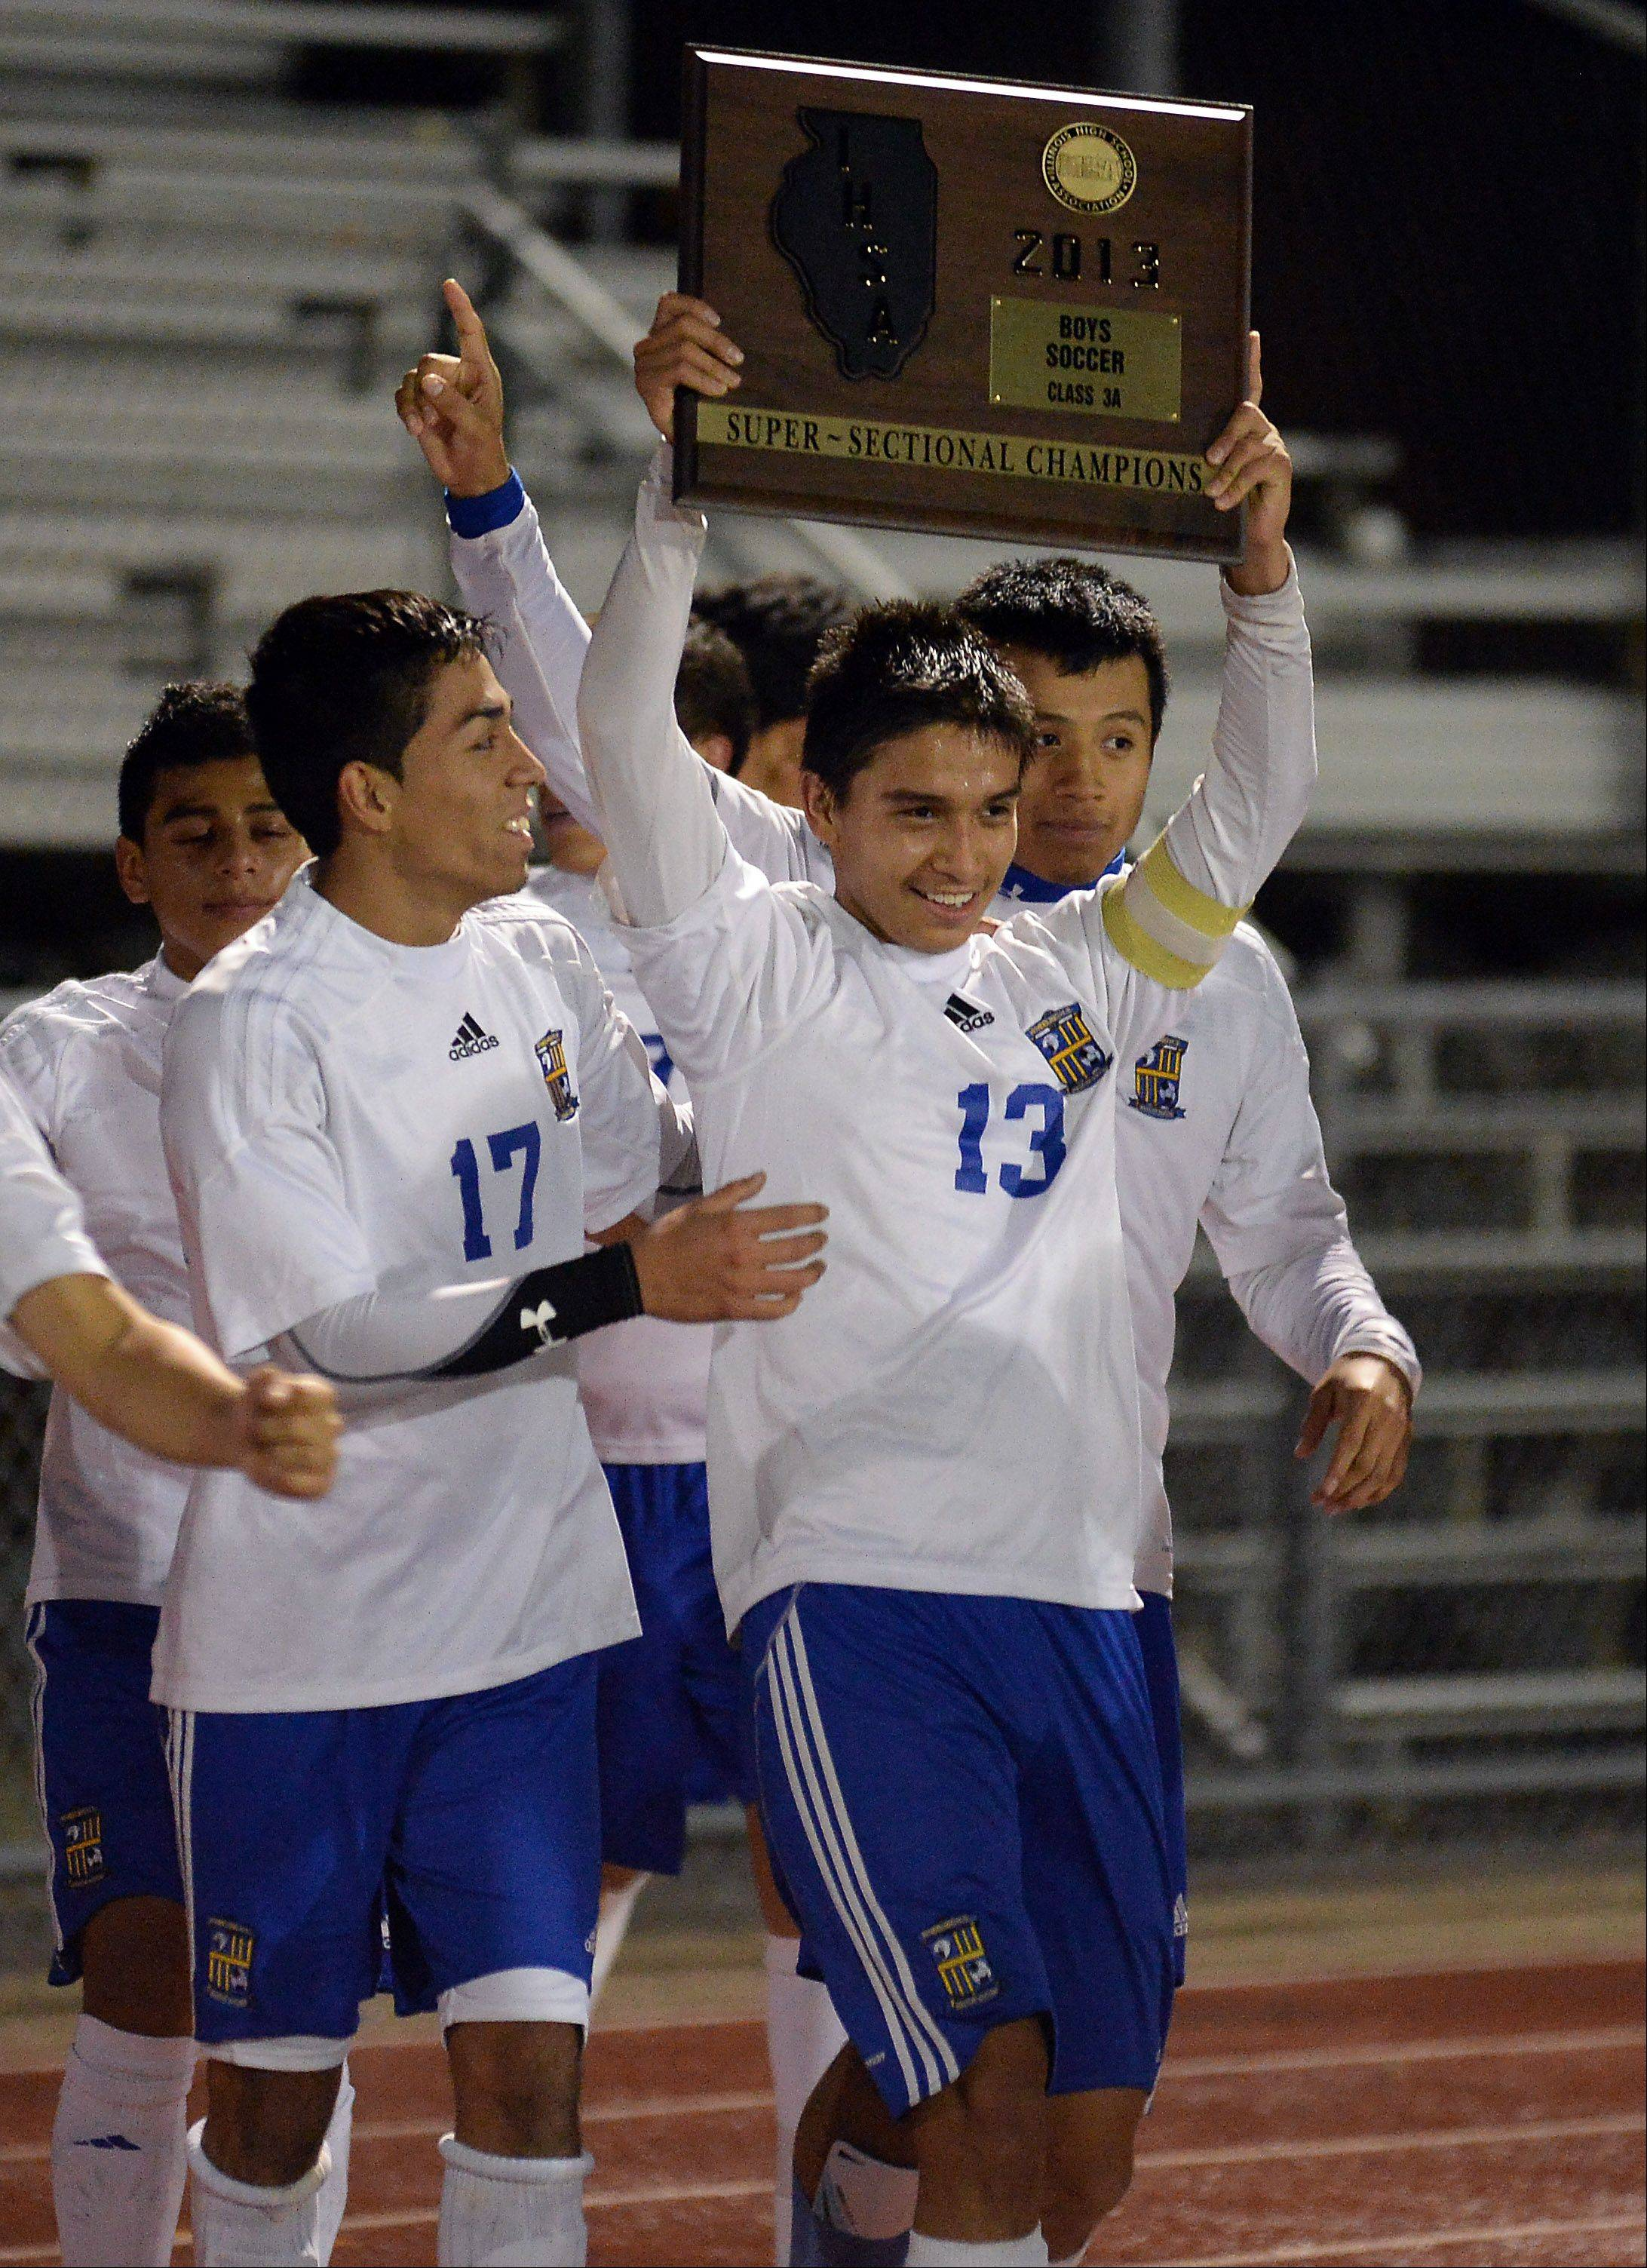 Wheeling's Jose Garcia and teammate Michael Hernandez celebrate their 2-1 victory in the super sectional on Tuesday.